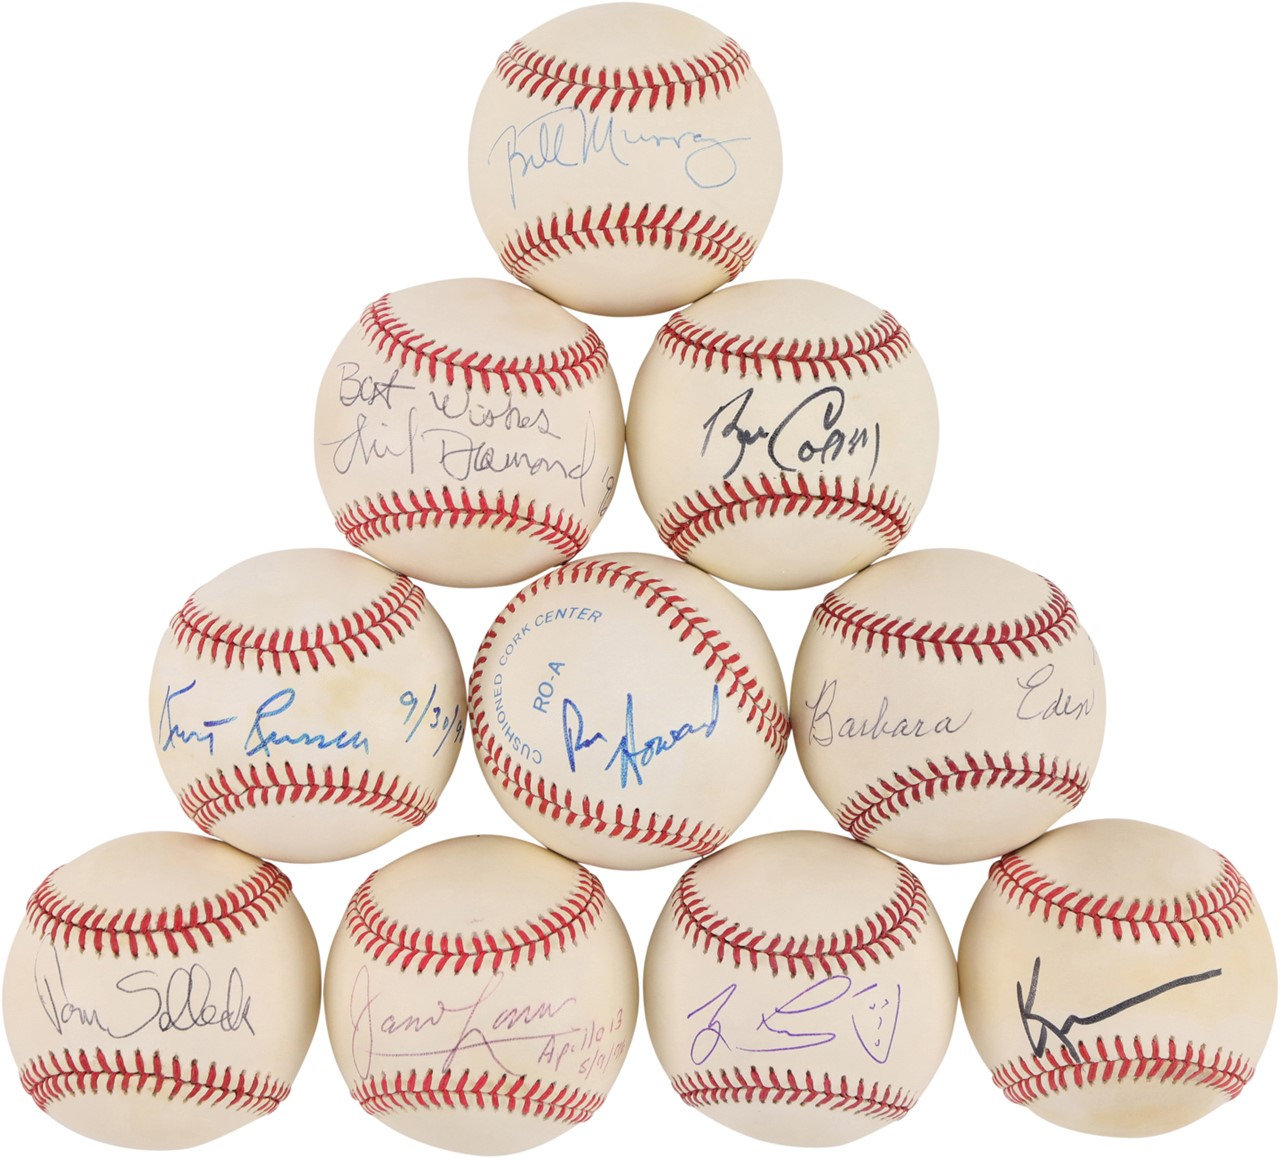 Baseball Autographs - Spring Classic 2021